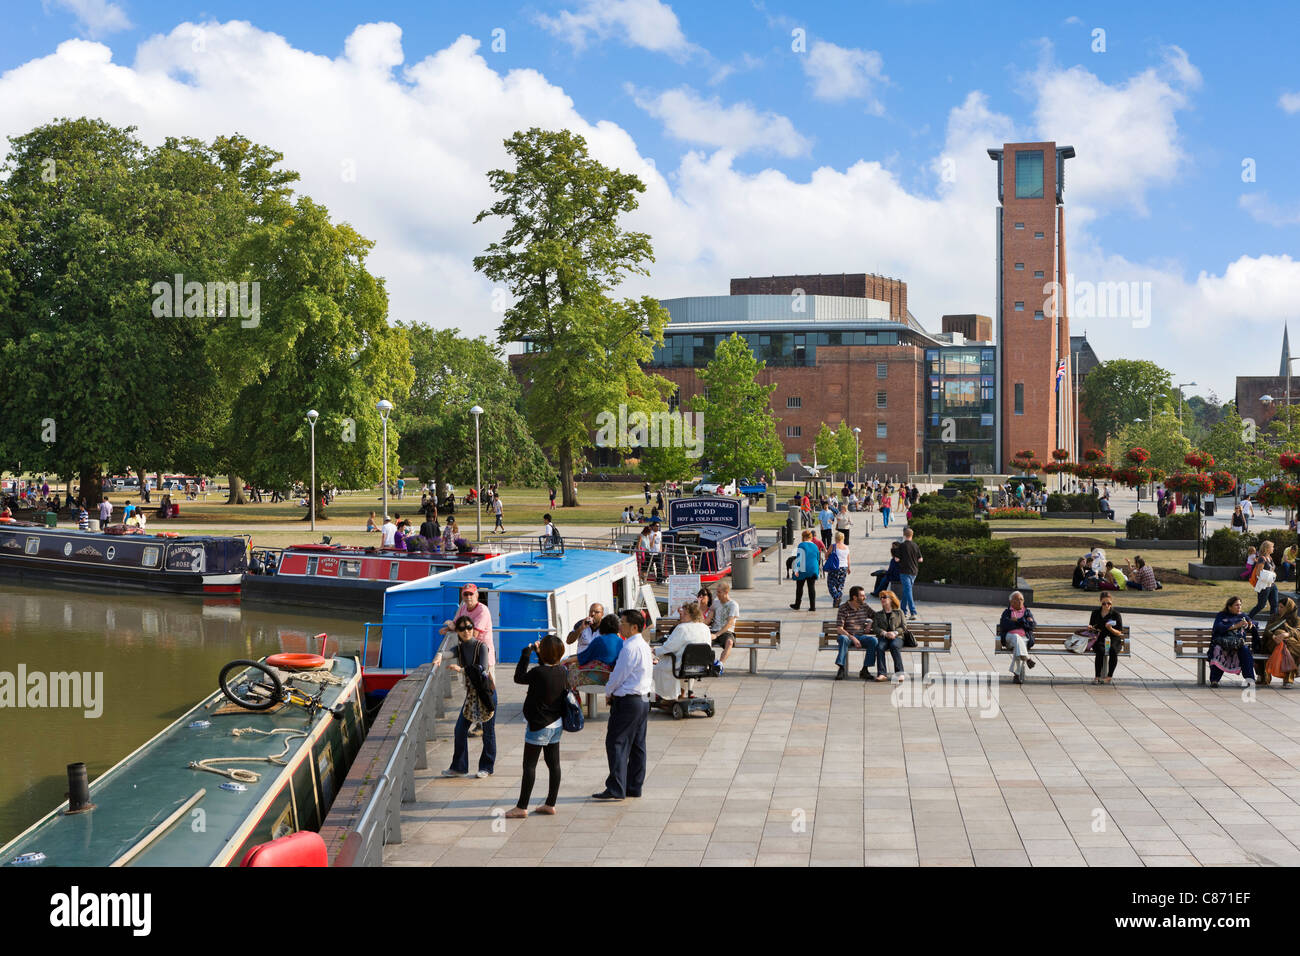 View across the Canal Basin and Bancroft Park to the Royal Shakespeare Theatre, Stratford-upon-Avon, Warwickshire, - Stock Image